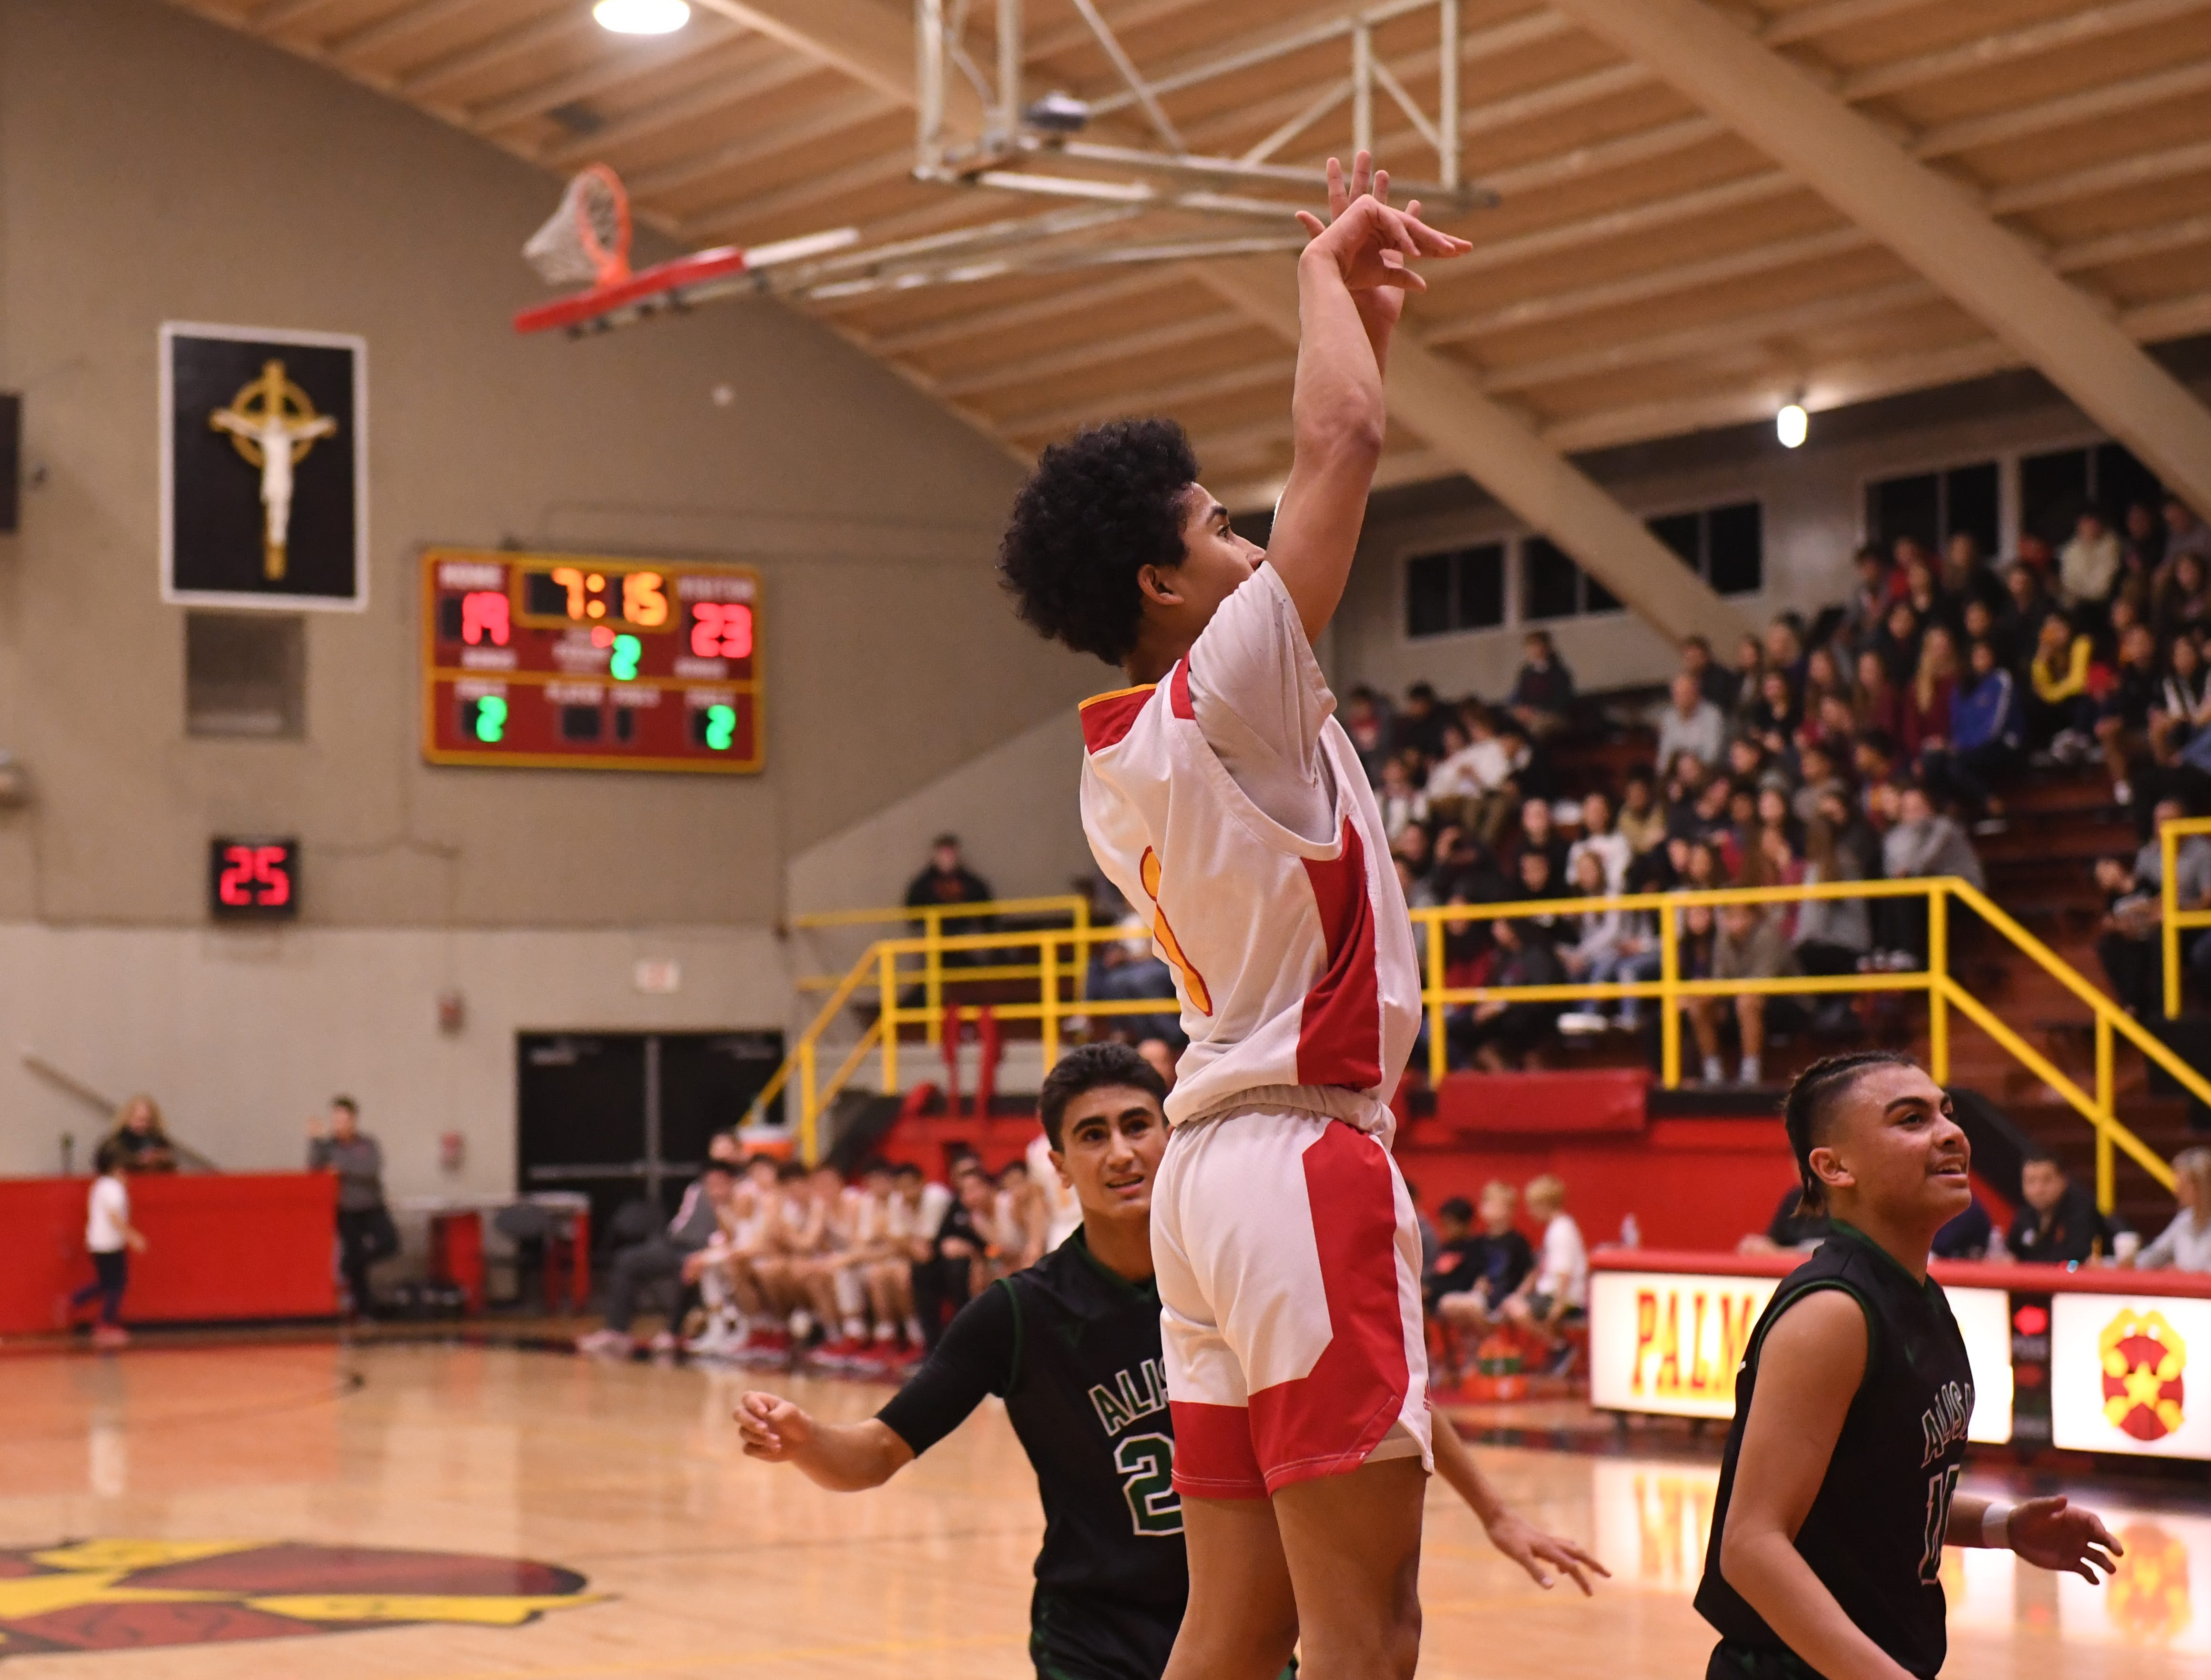 Palma guard Nate Jean Pierre (1) launches a shot from the right baseline.